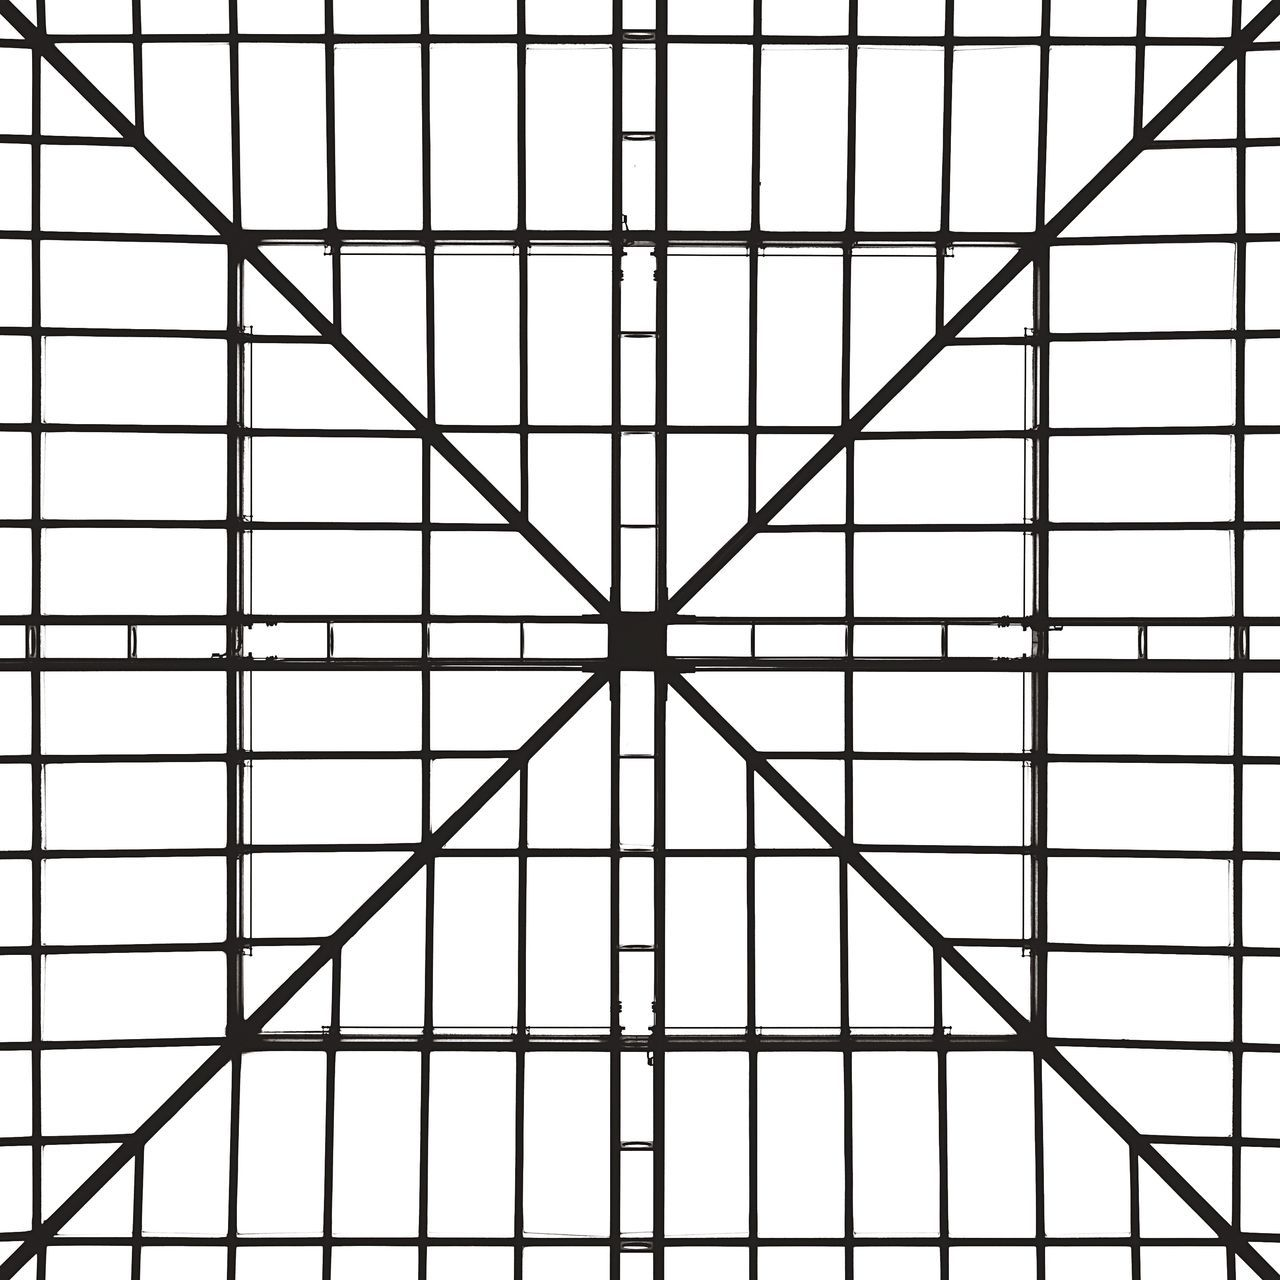 Pattern Geometry Square Contrast Lines Design Architecture